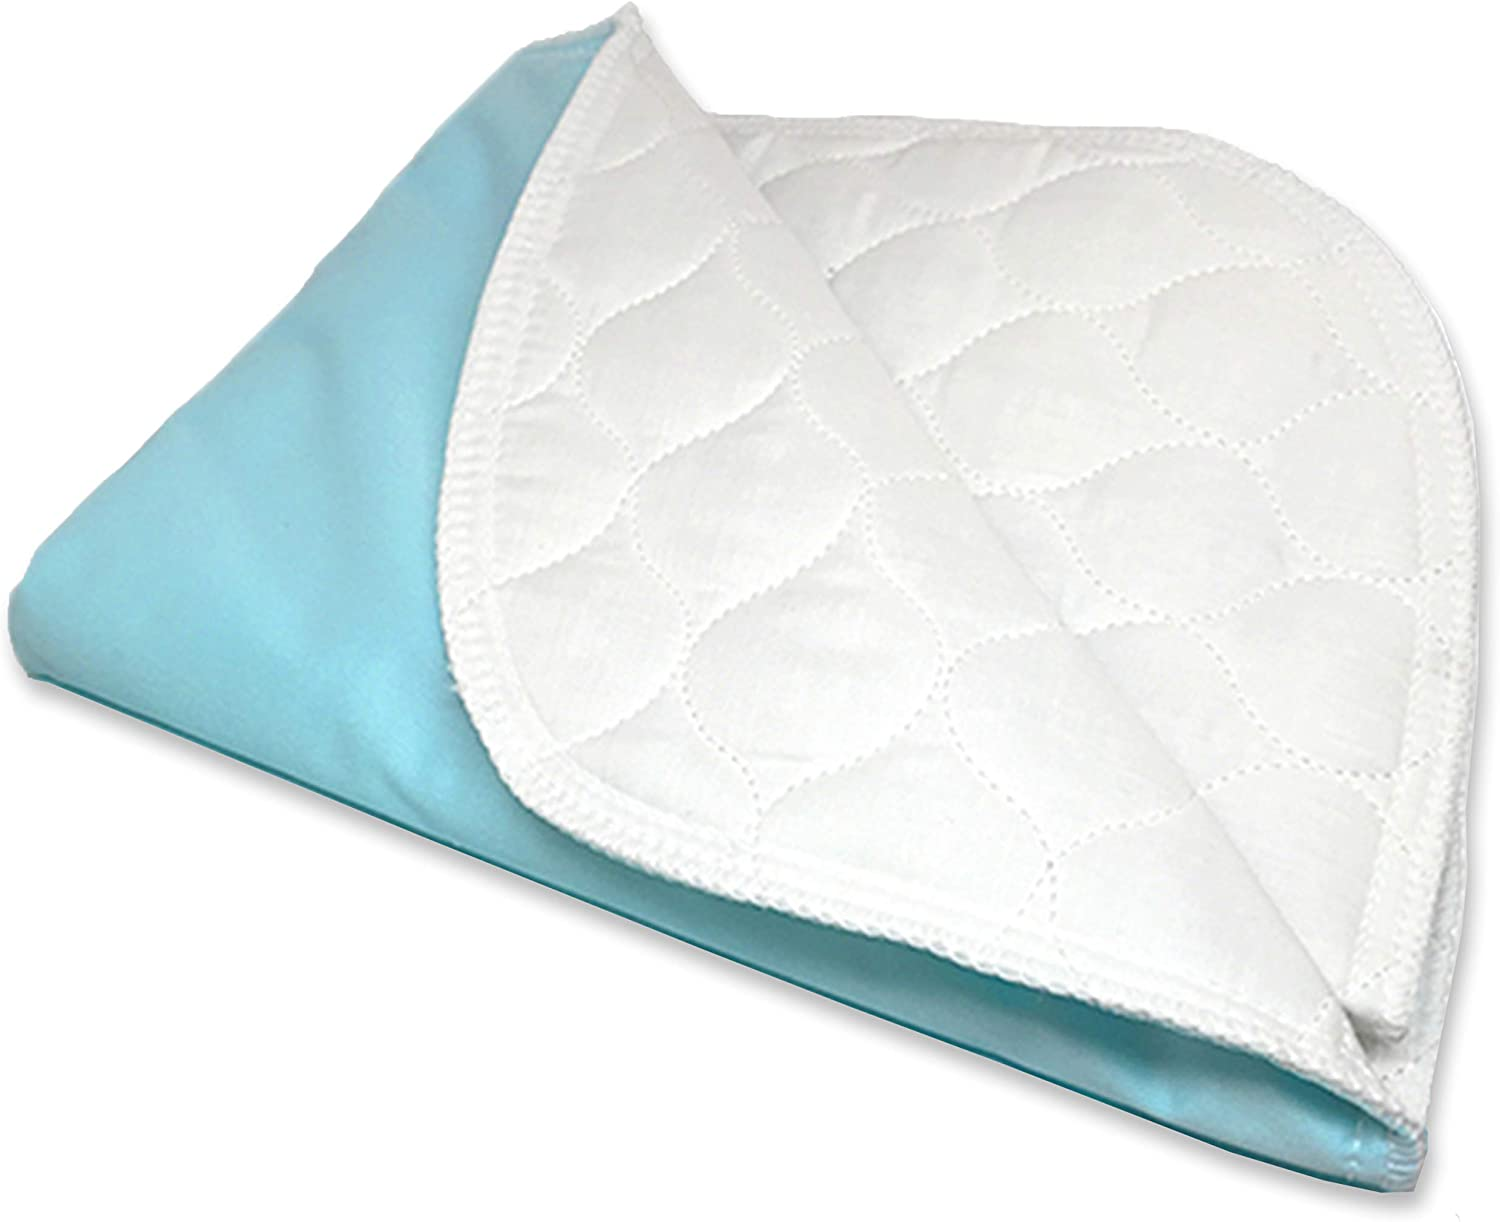 "Ultra Soft 4-Layer Washable and Reusable Incontinence Bed Pad - Waterproof Bed Pads, 34""X54"": Health & Personal Care"